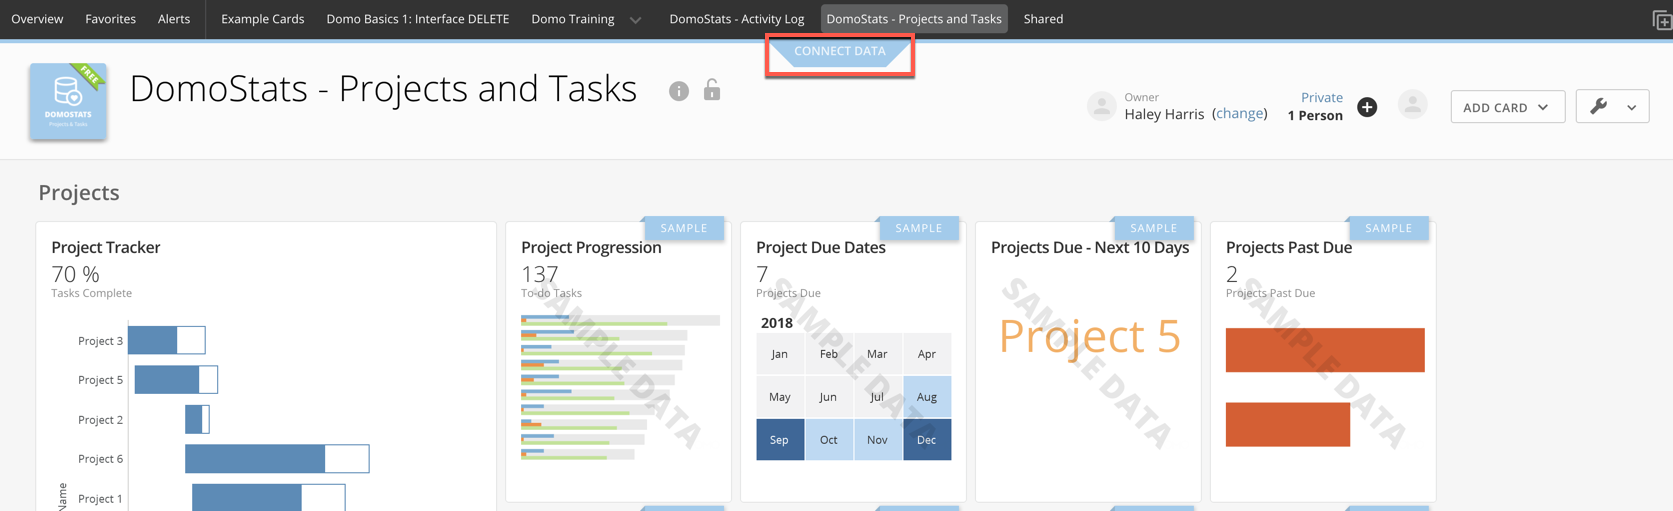 DomoStats - Project and Tasks - Connect Data.png